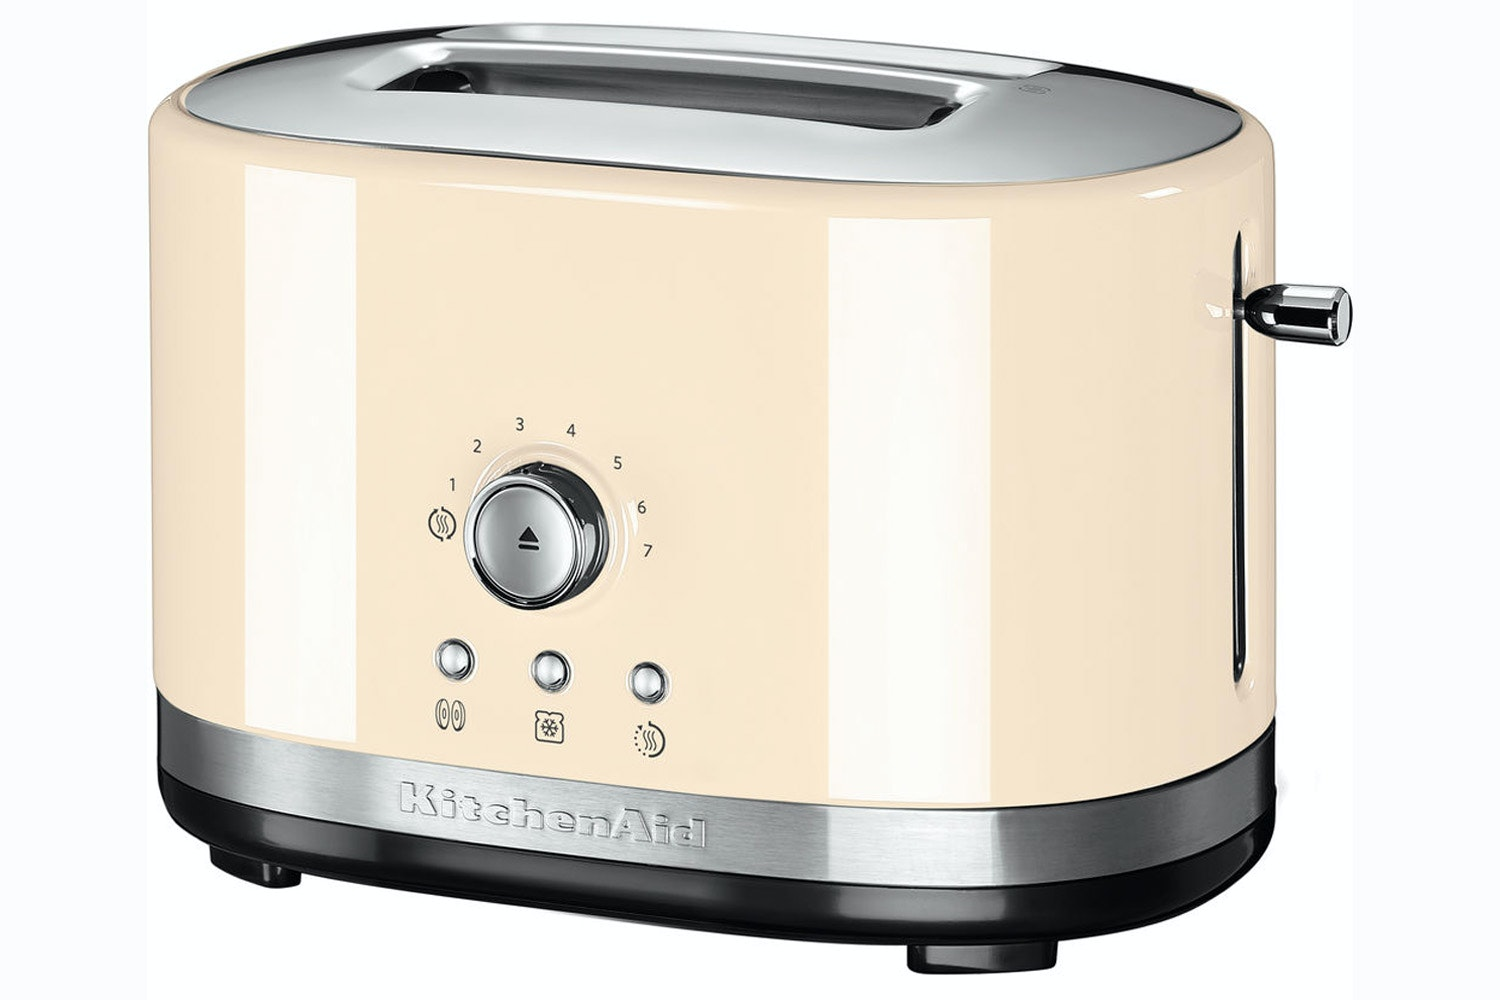 KitchenAid 2 Slice Toaster | 5KMT2116BAC | Almond Cream